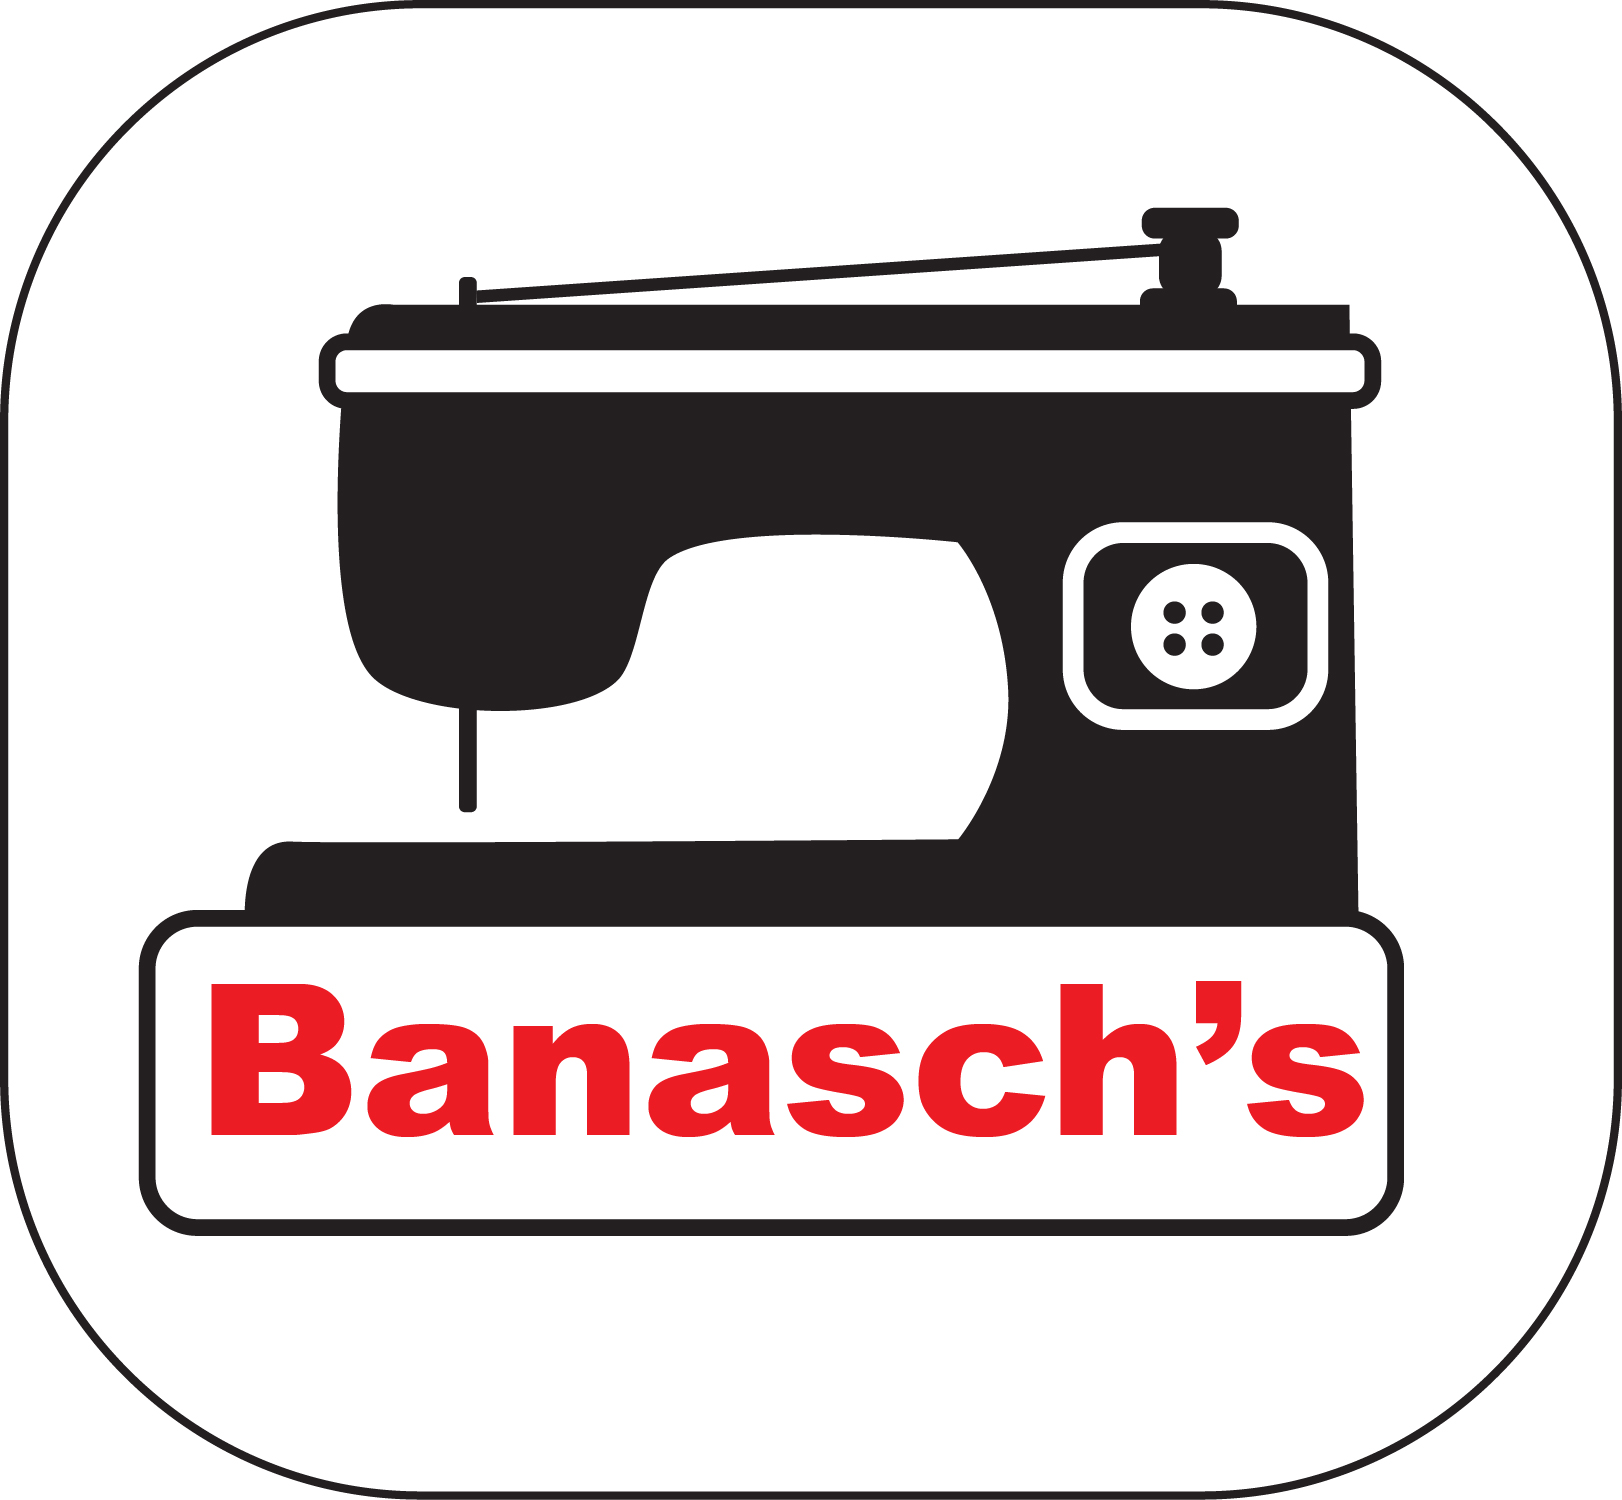 Banasch's Inc. Enhances Customer's Online Experience